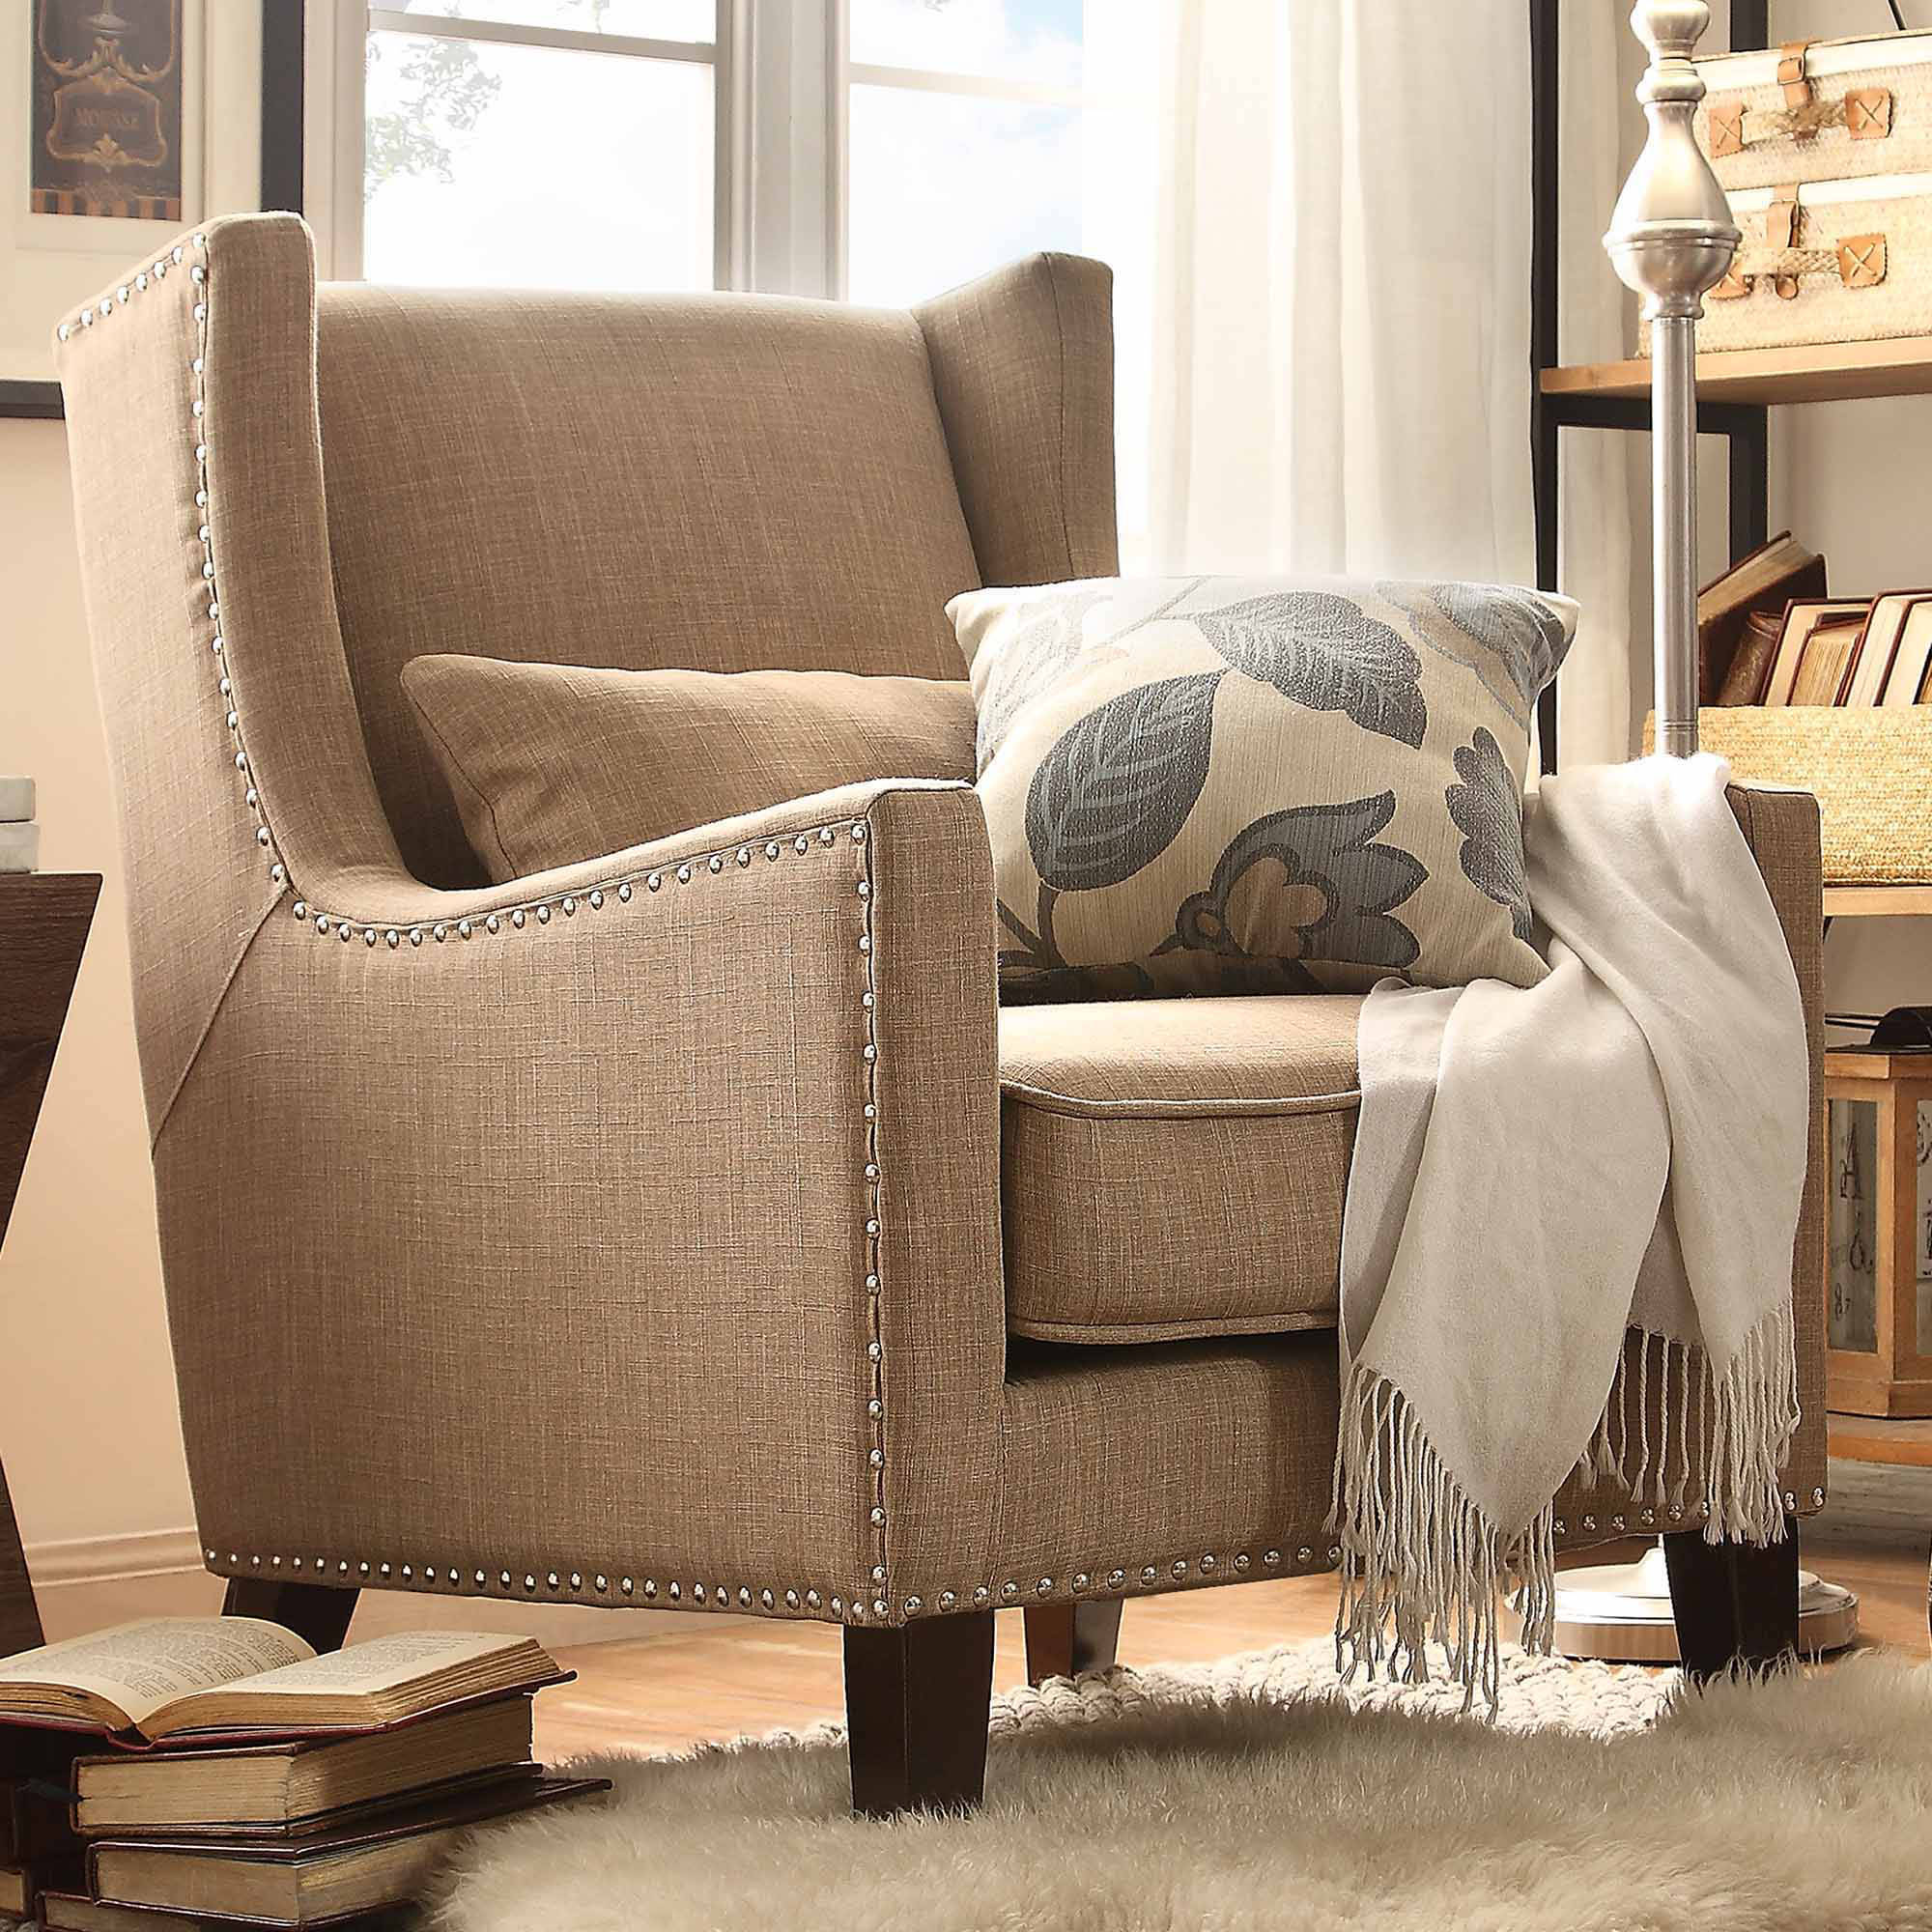 Weston Home St Alden Living Room Linen Accent Chair With Matching Throw Pillow, Multiple Colors